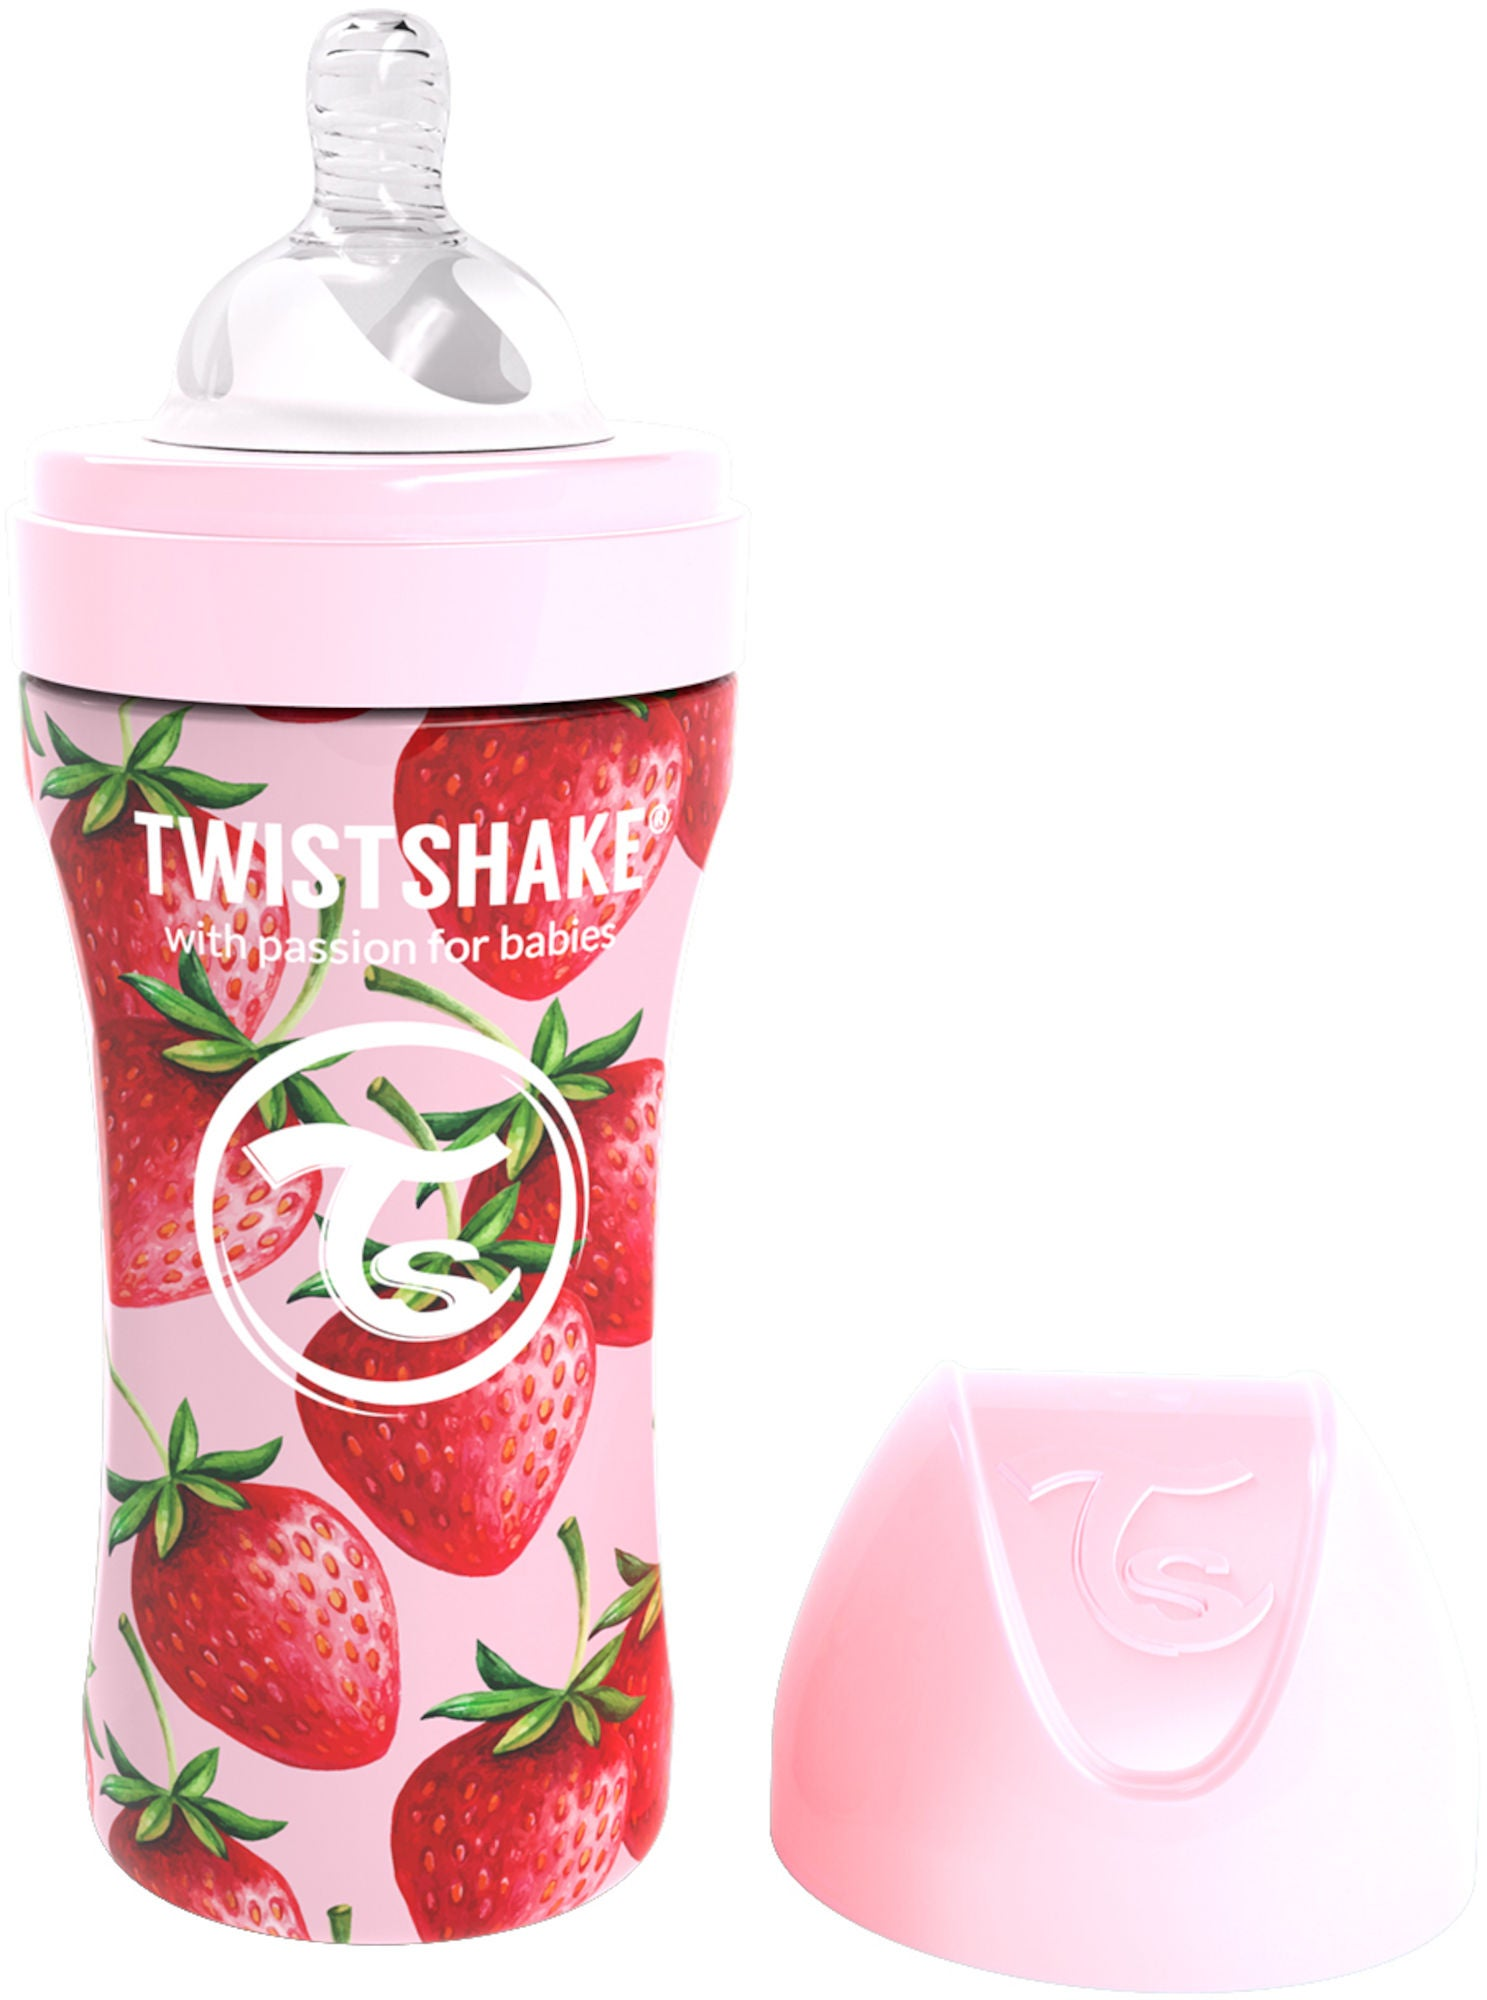 Twistshake Anti-Colic Stainless Steel Babyflasche 330 ml, Strawberry